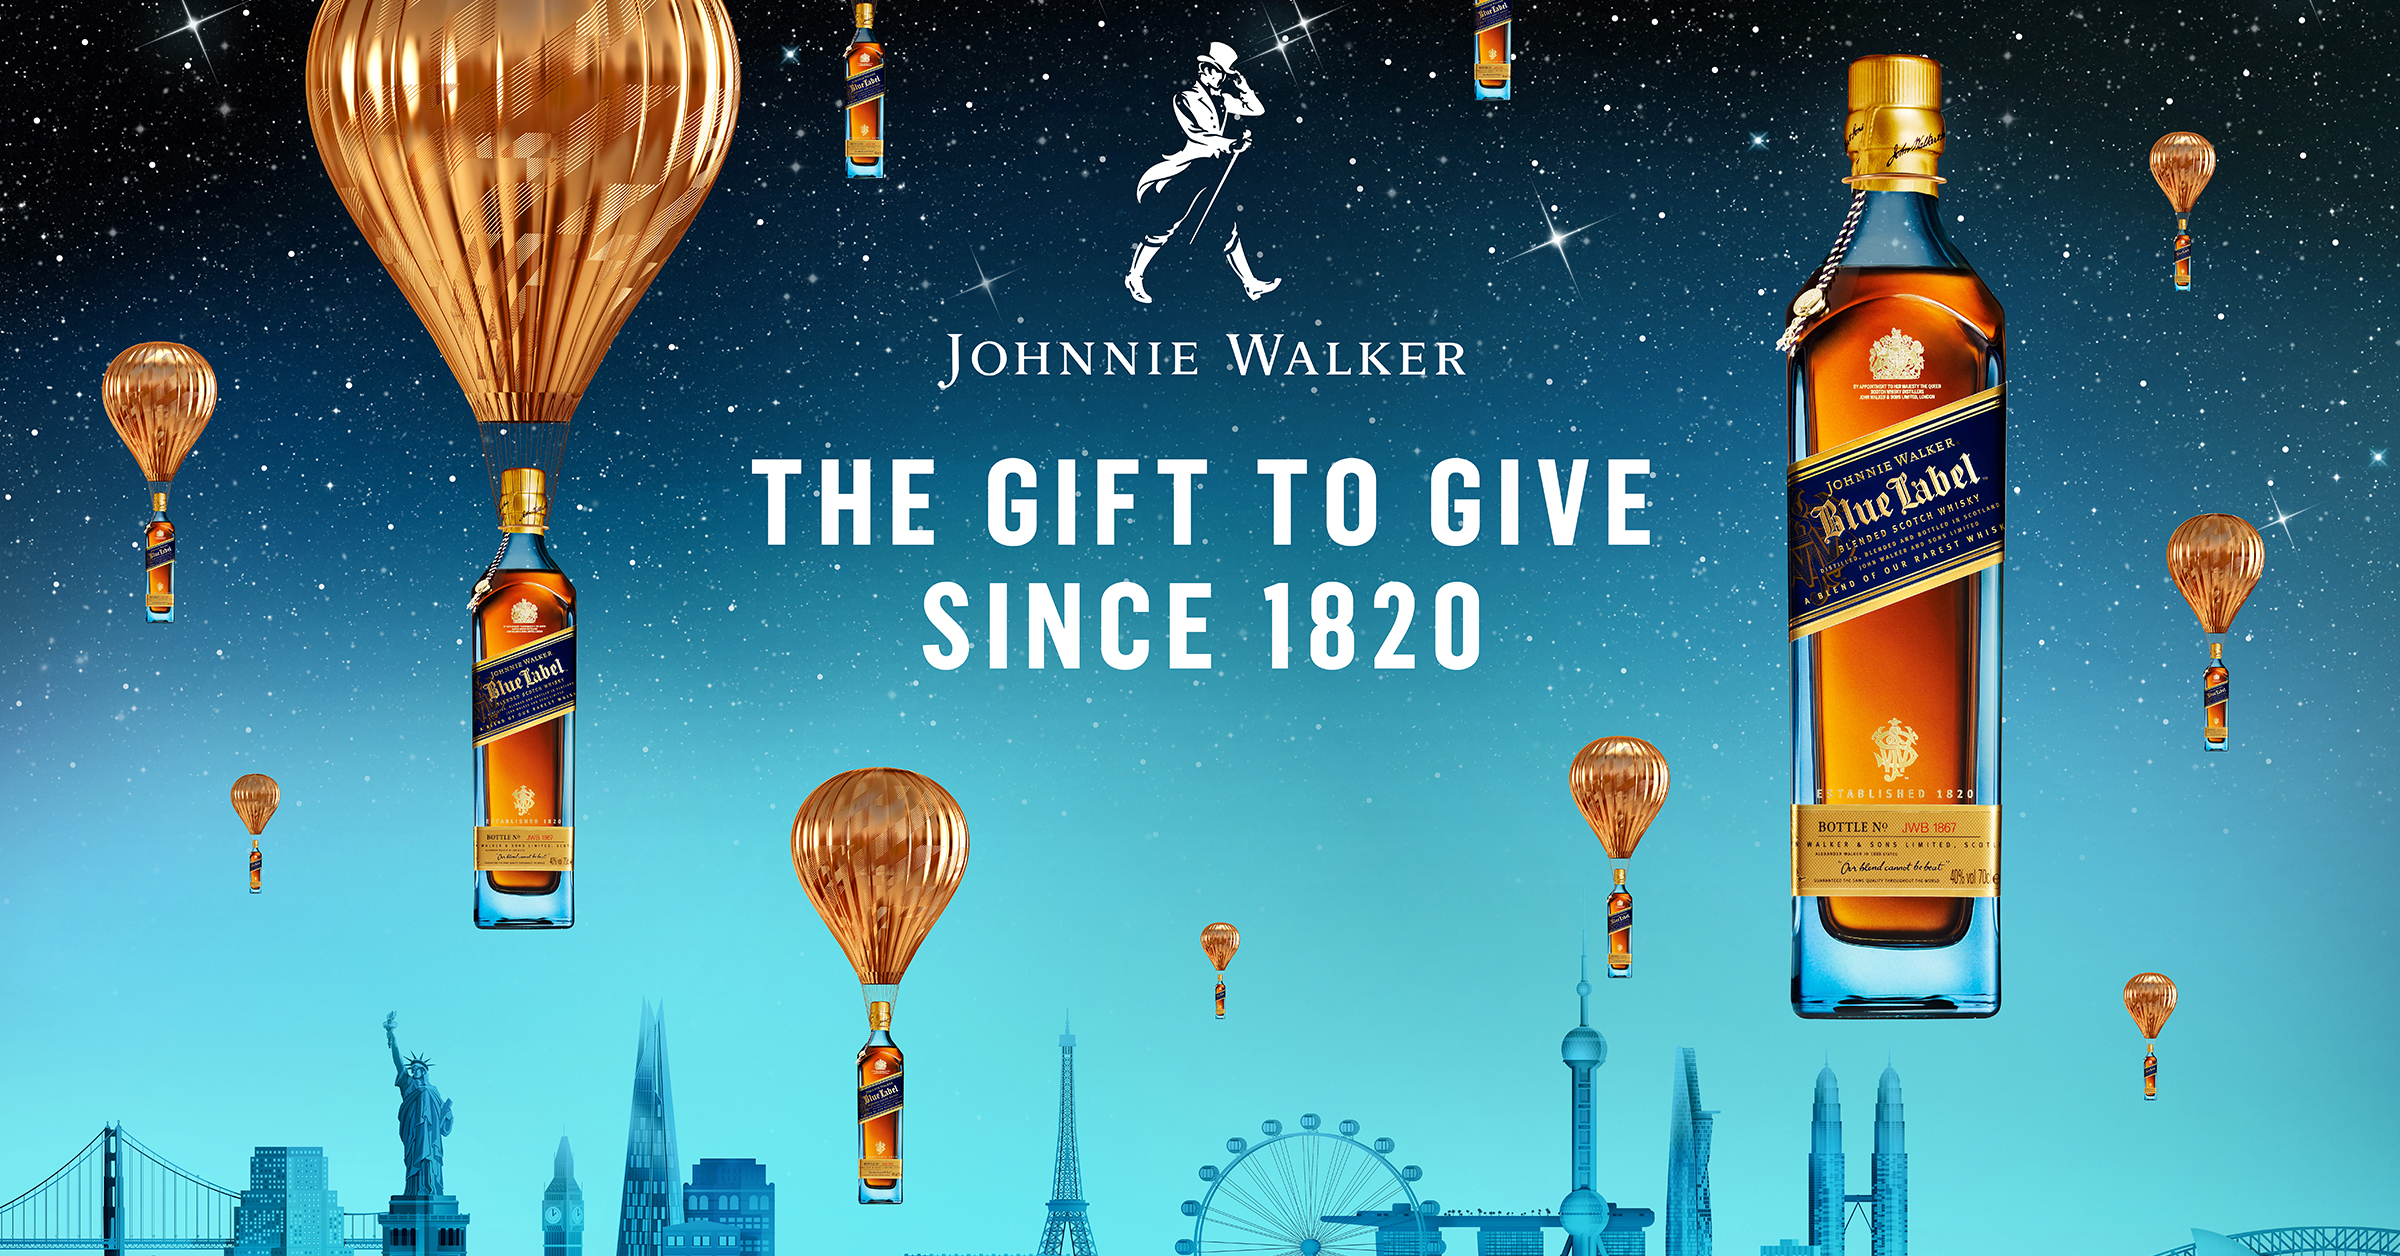 Johnnie Walker The gift to give since 1820